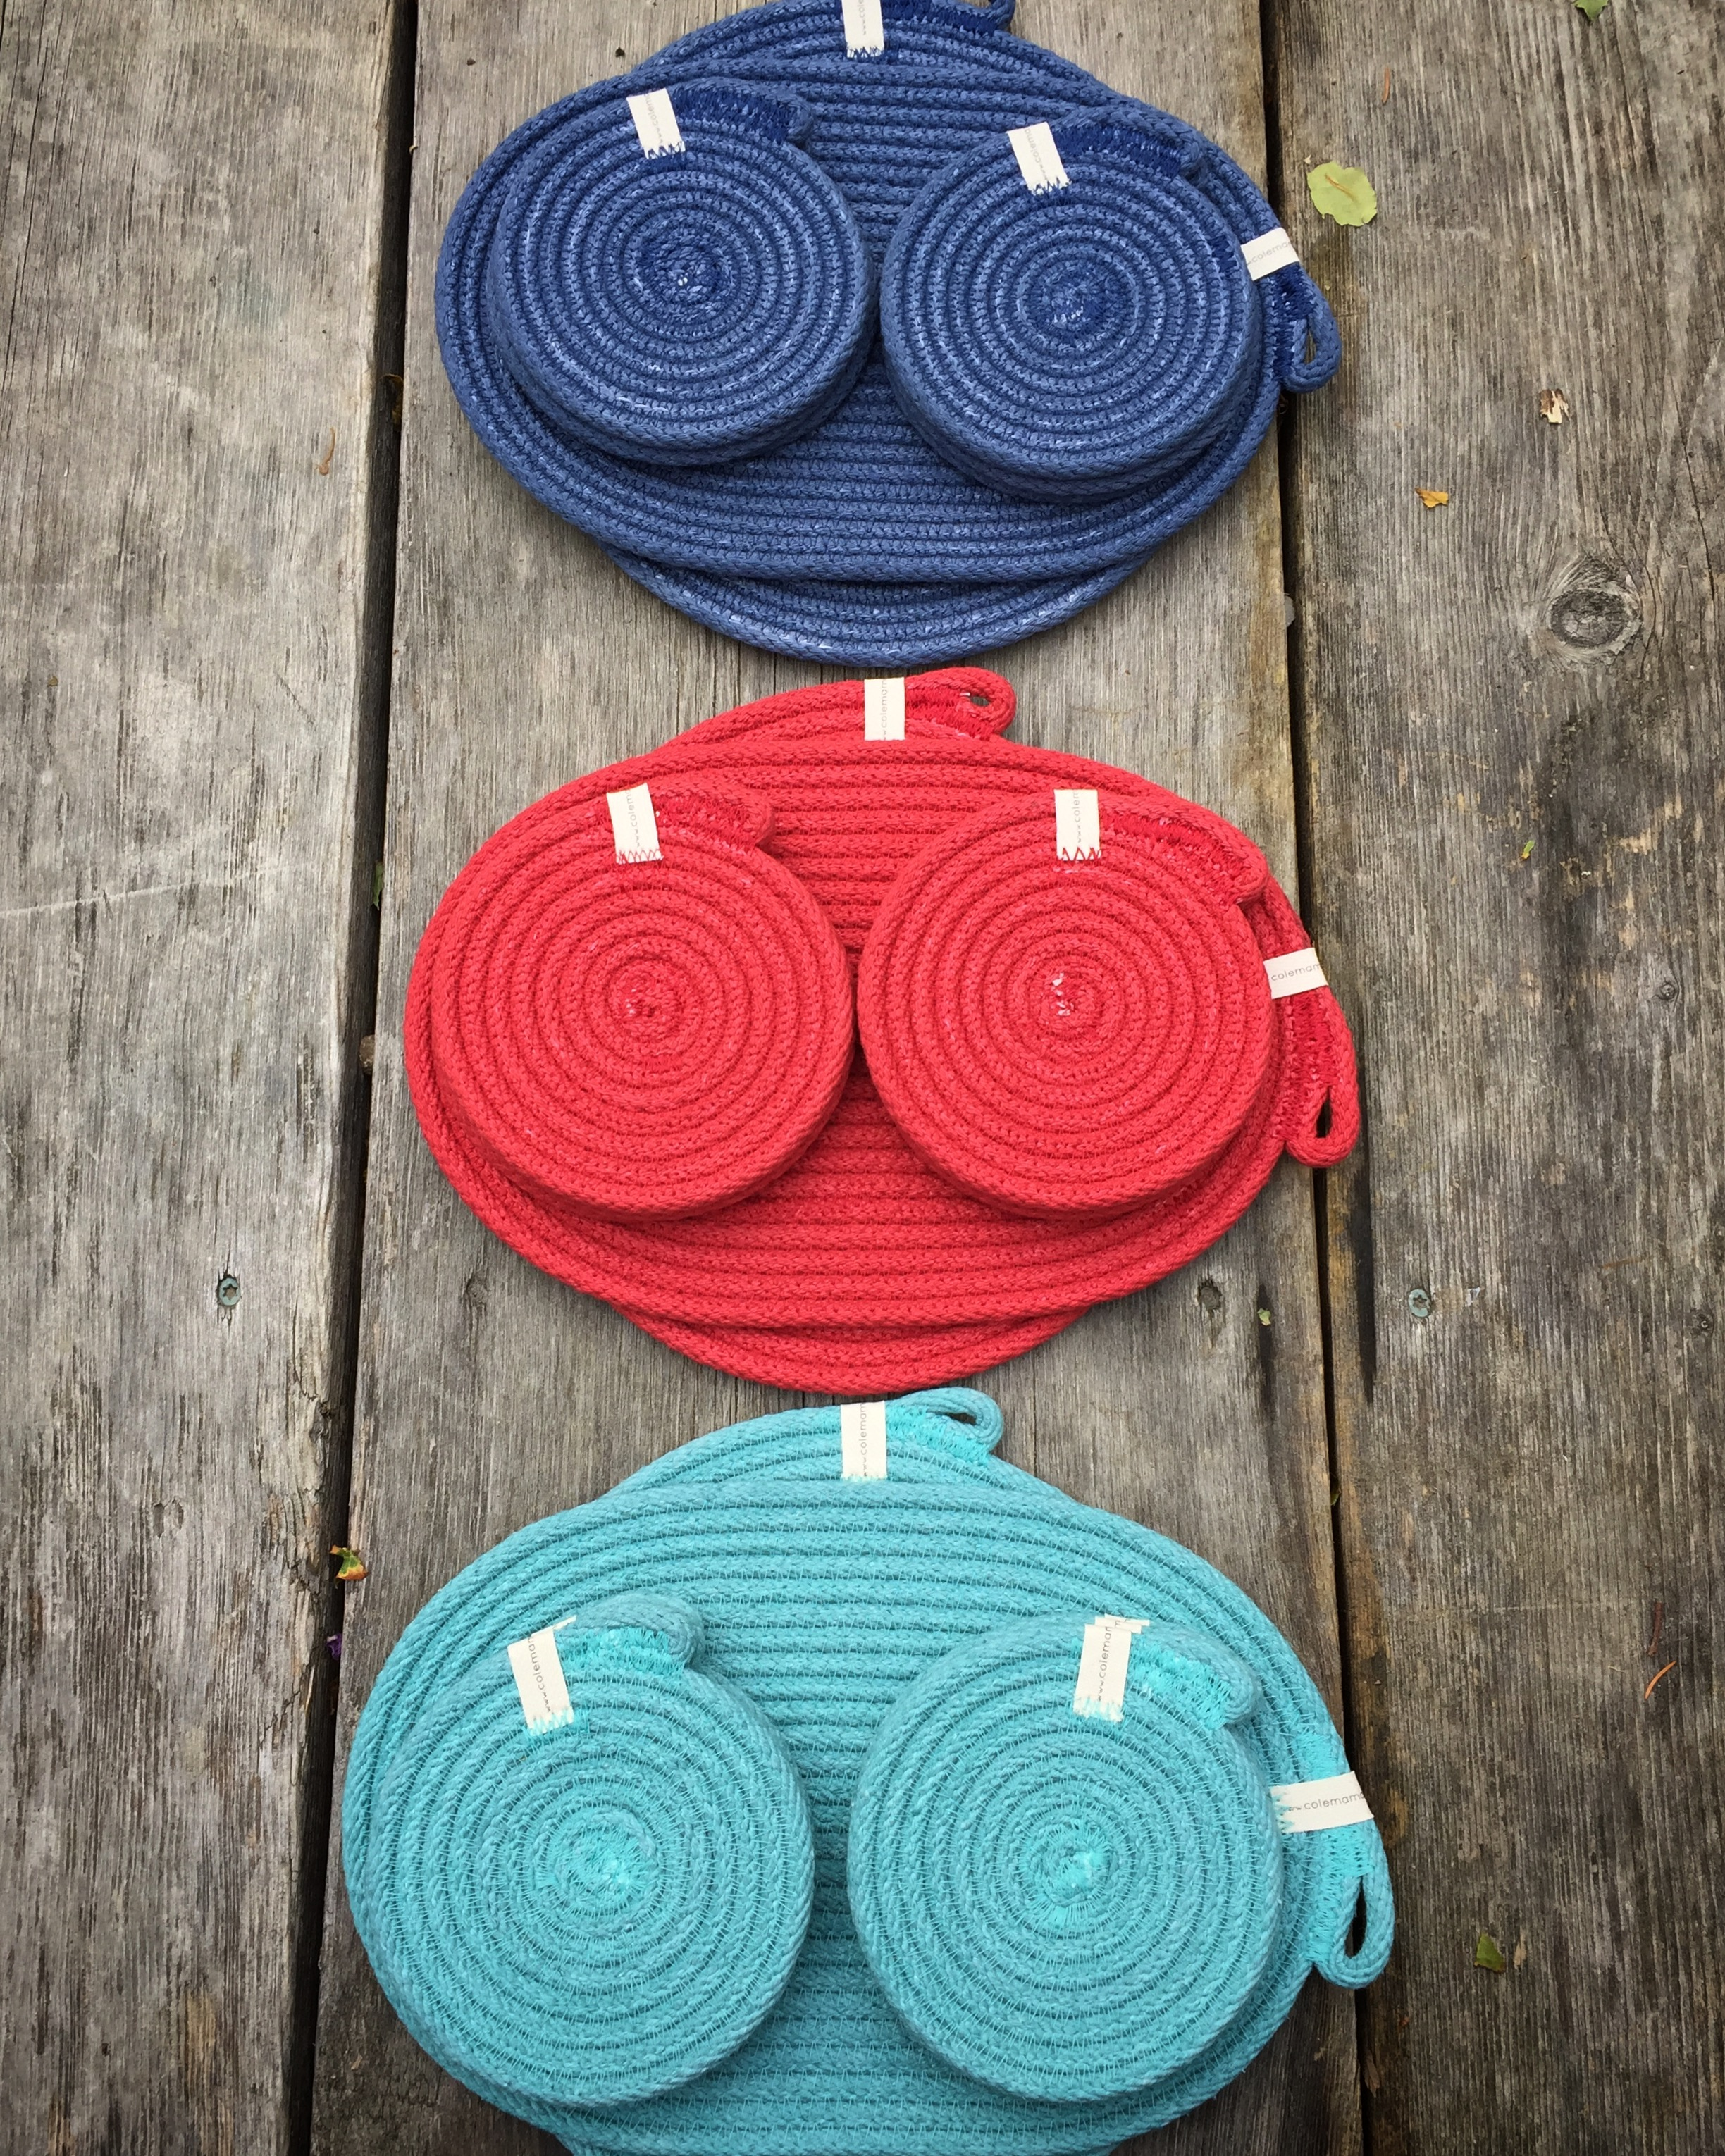 | | coasters and trivets | |